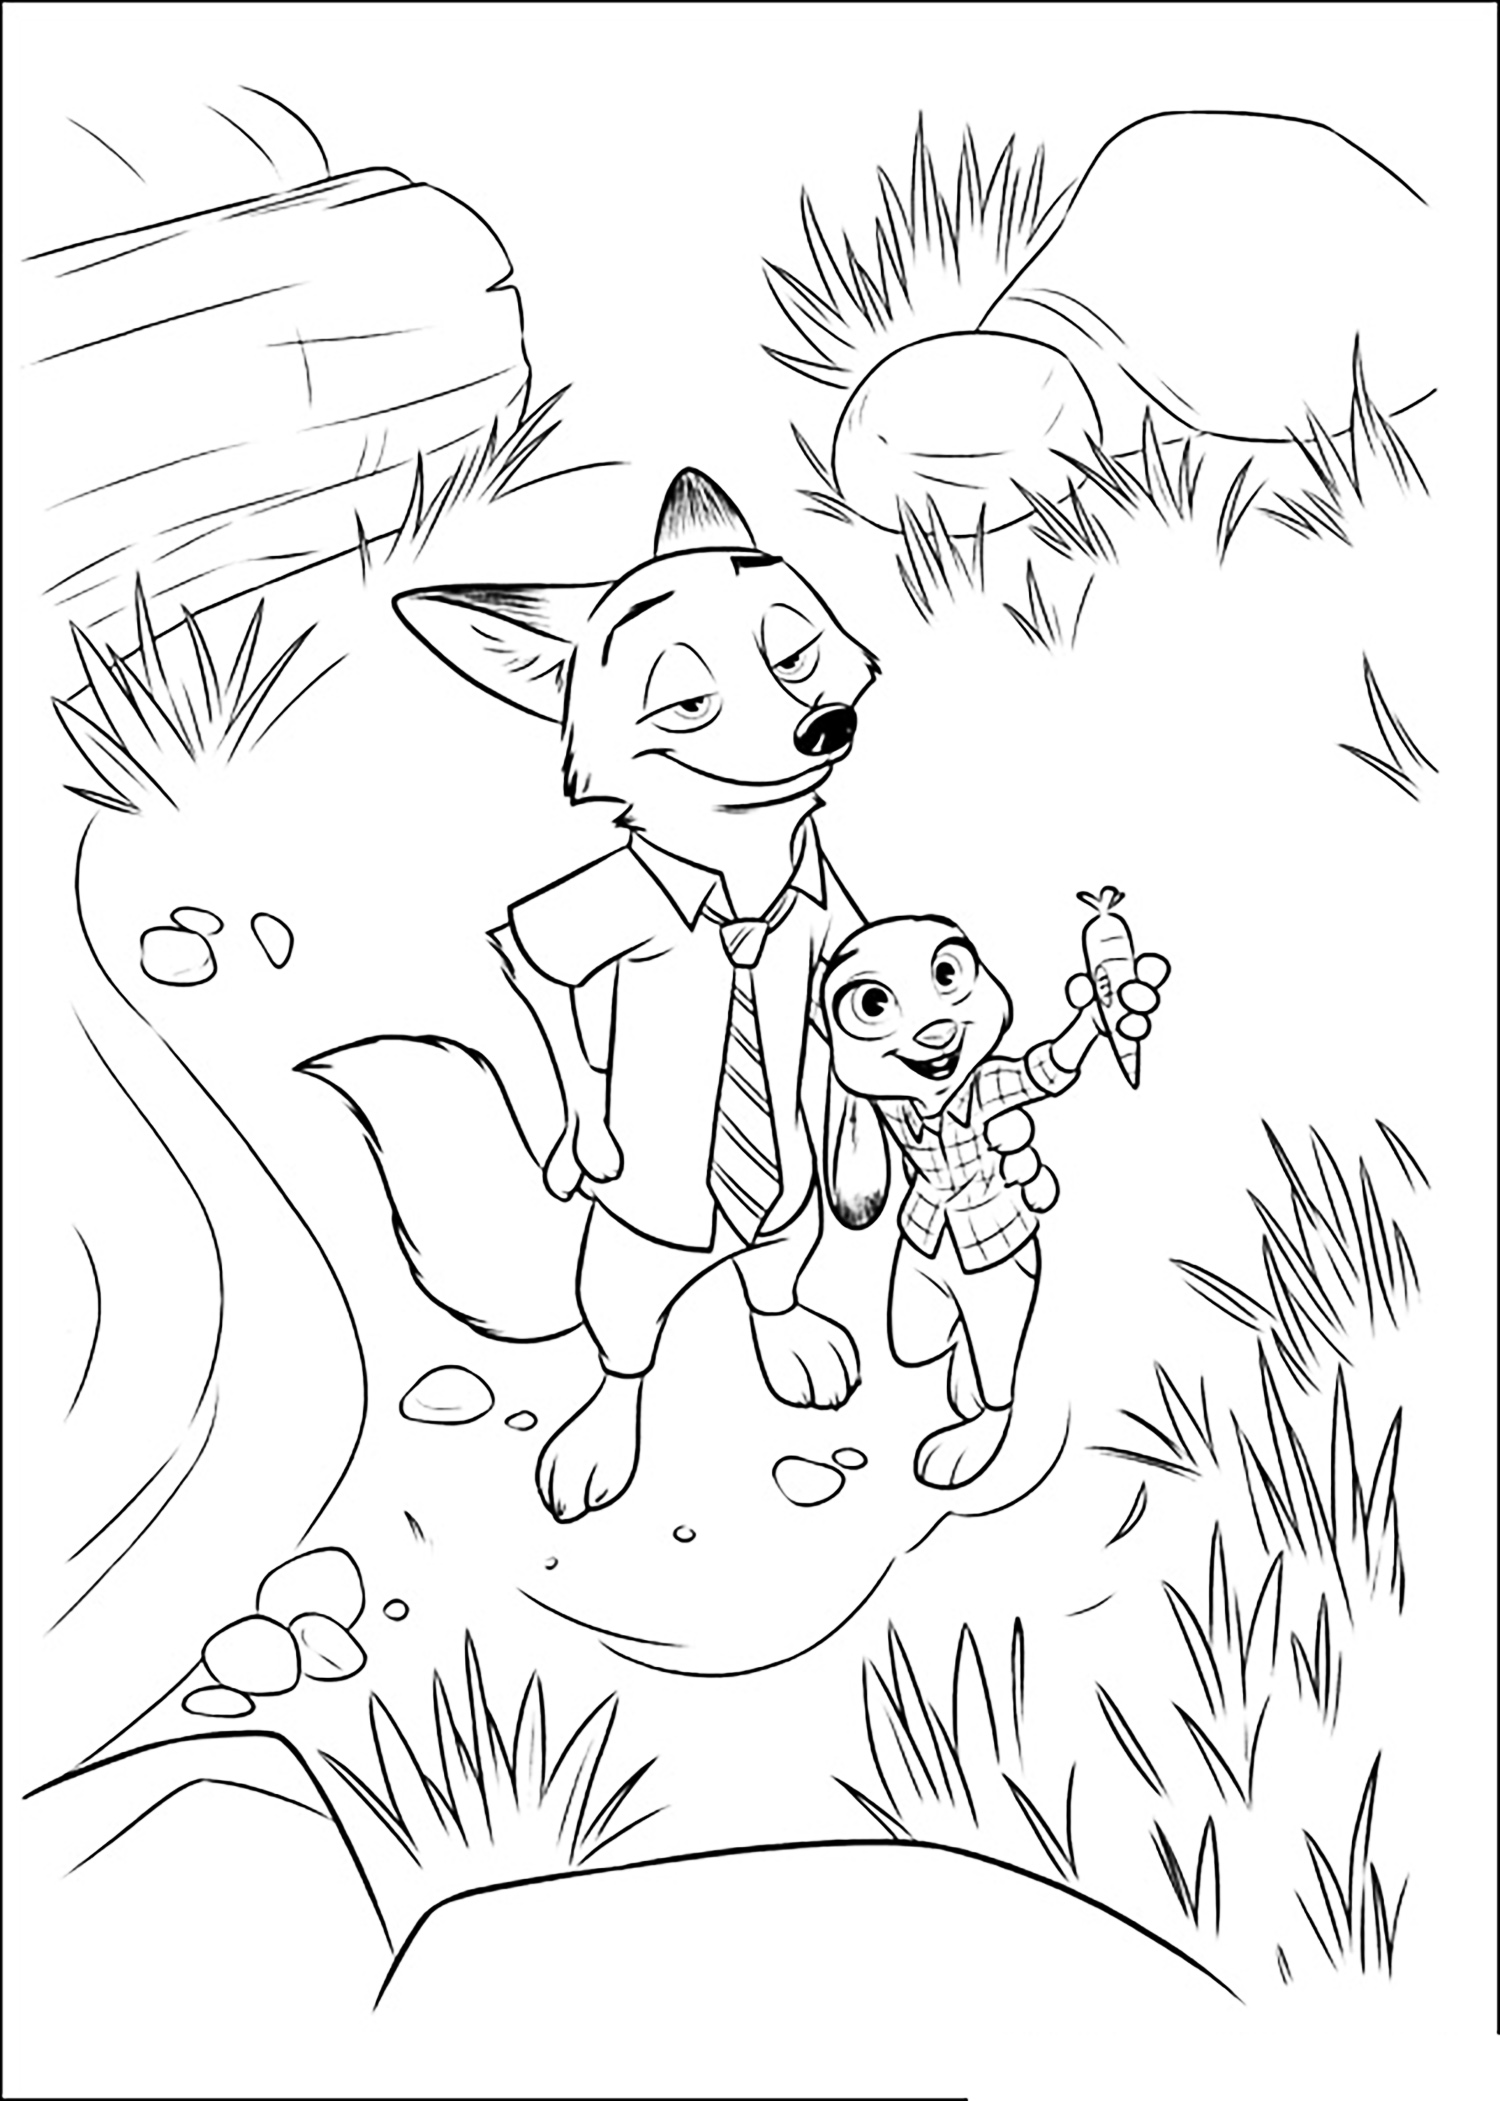 Beautiful Zootopia coloring page to print and color : Judy Hopps with Nick Wilde